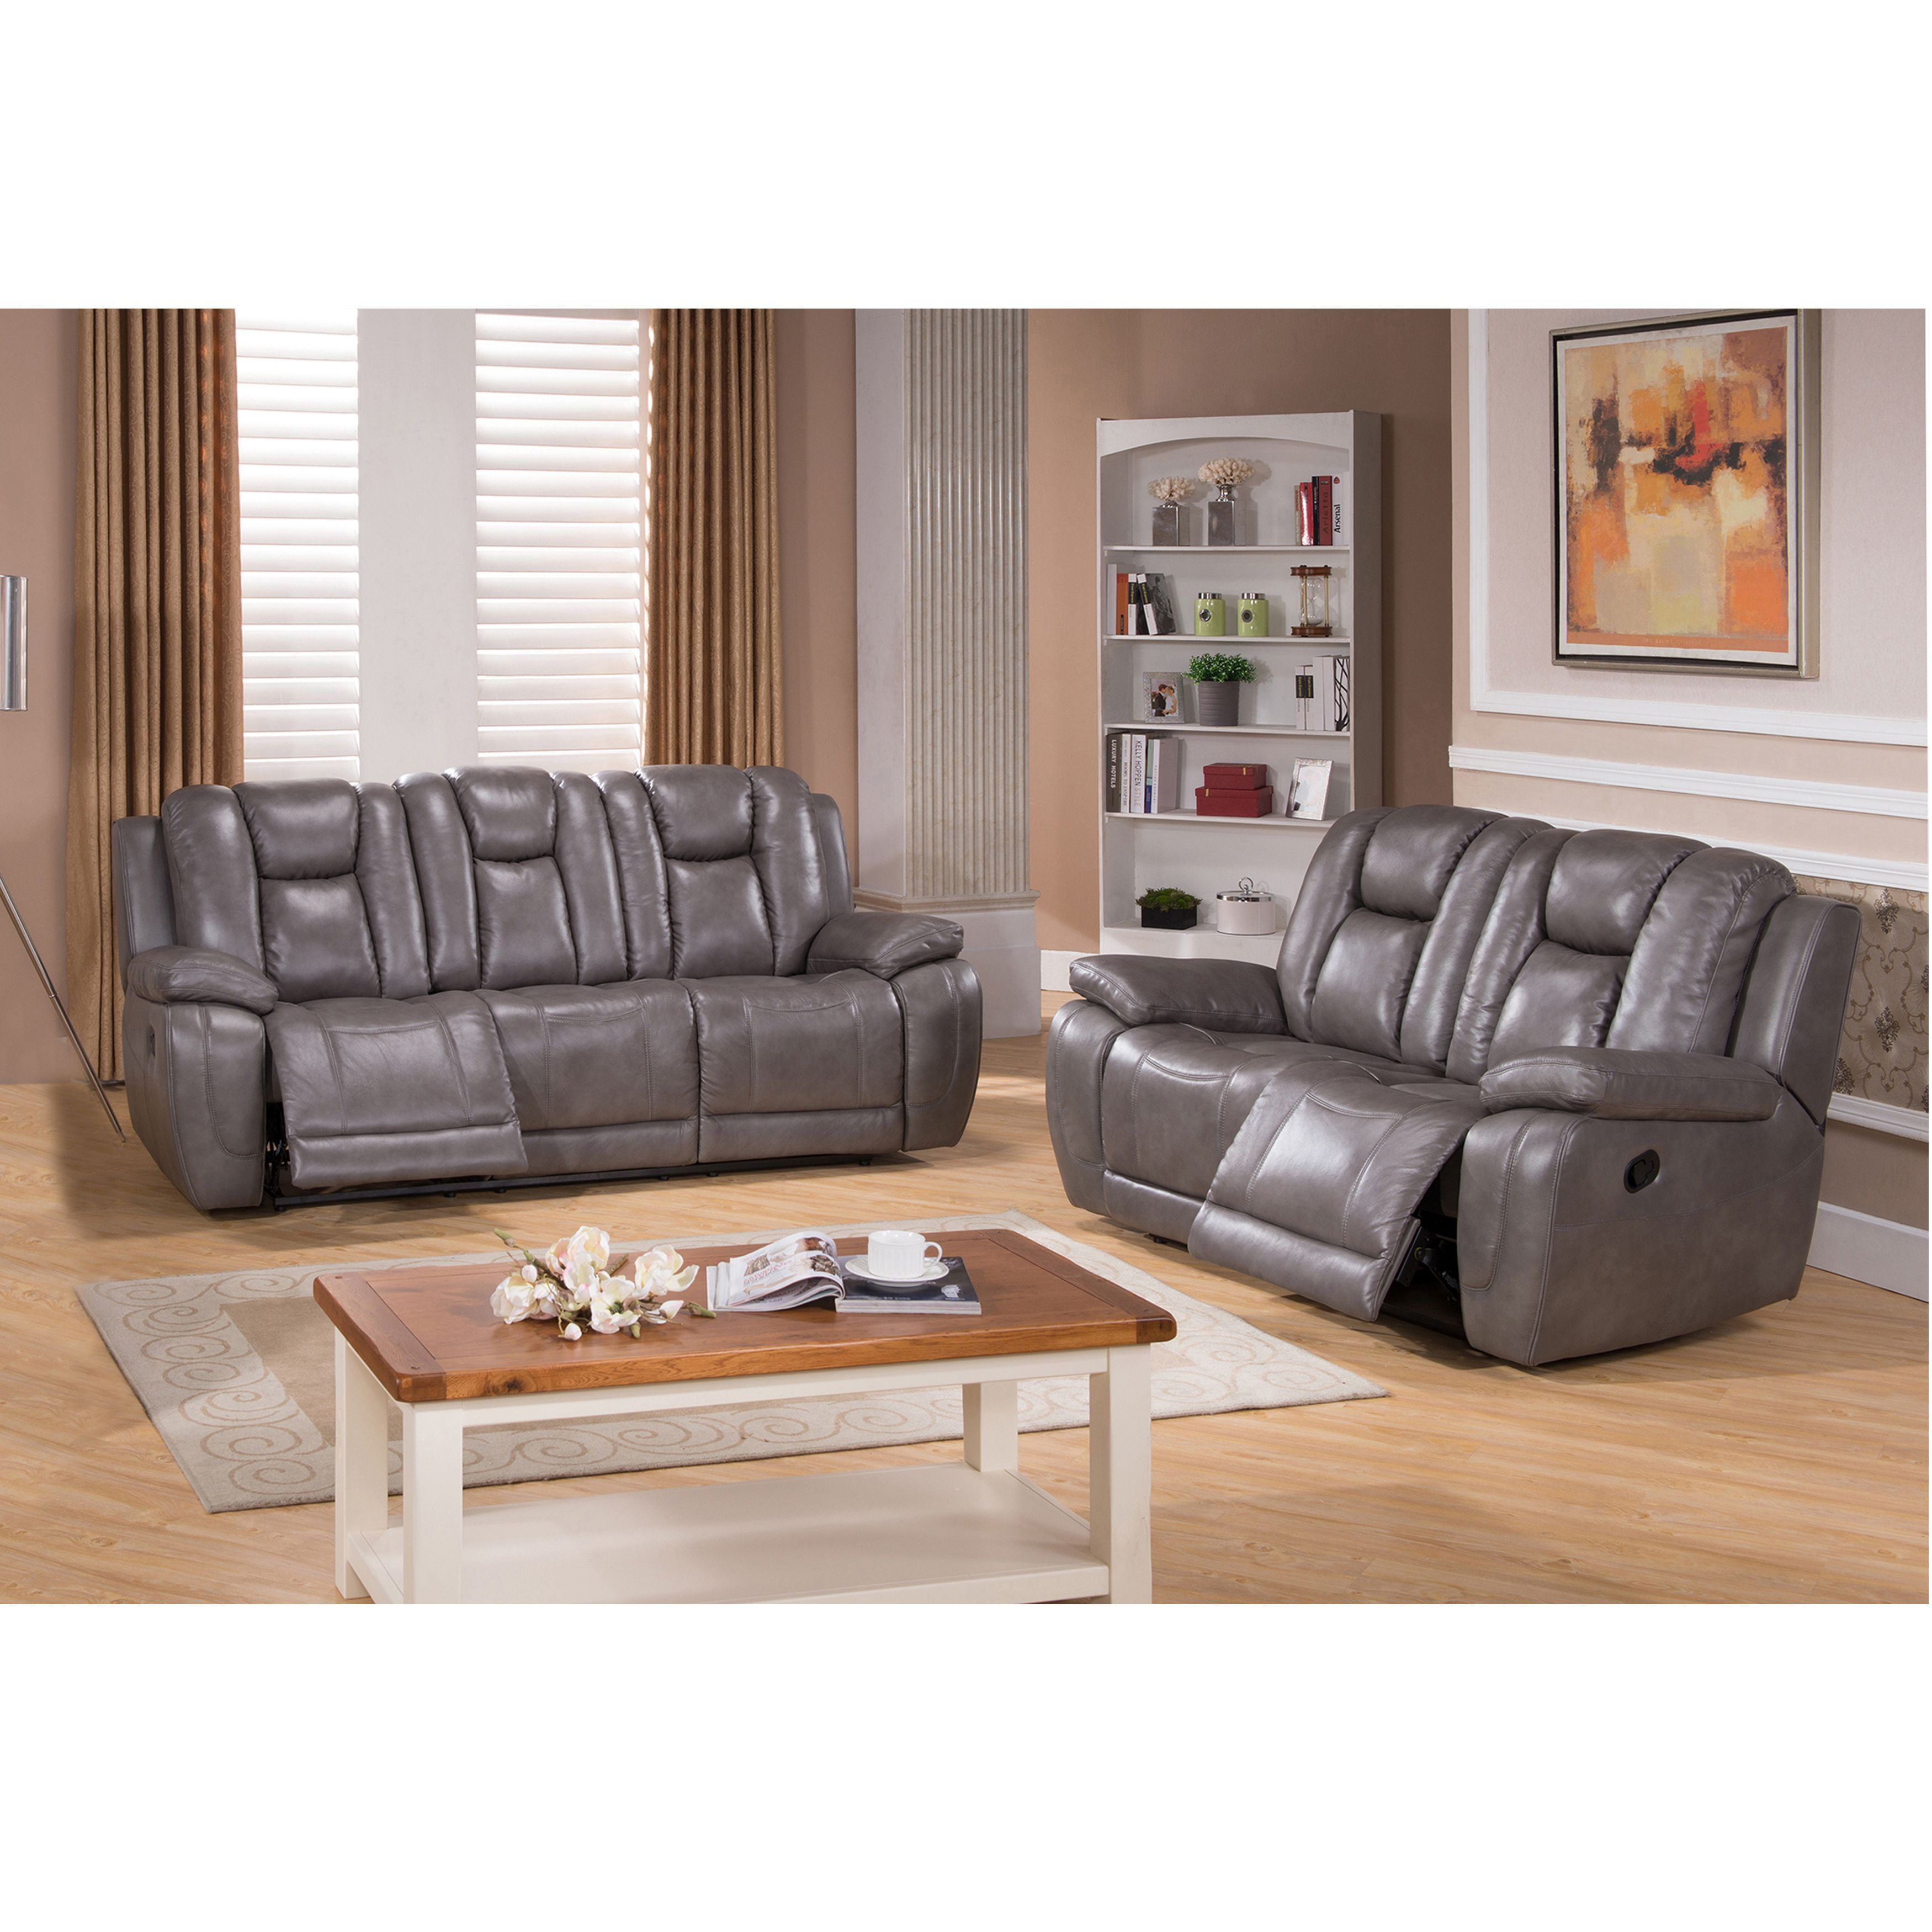 Reclining Leather Living Room Furniture Sets Names Of Relax In Comfort And Style With This Ultra Premium Sofa Loveseat Set Luxurious Is